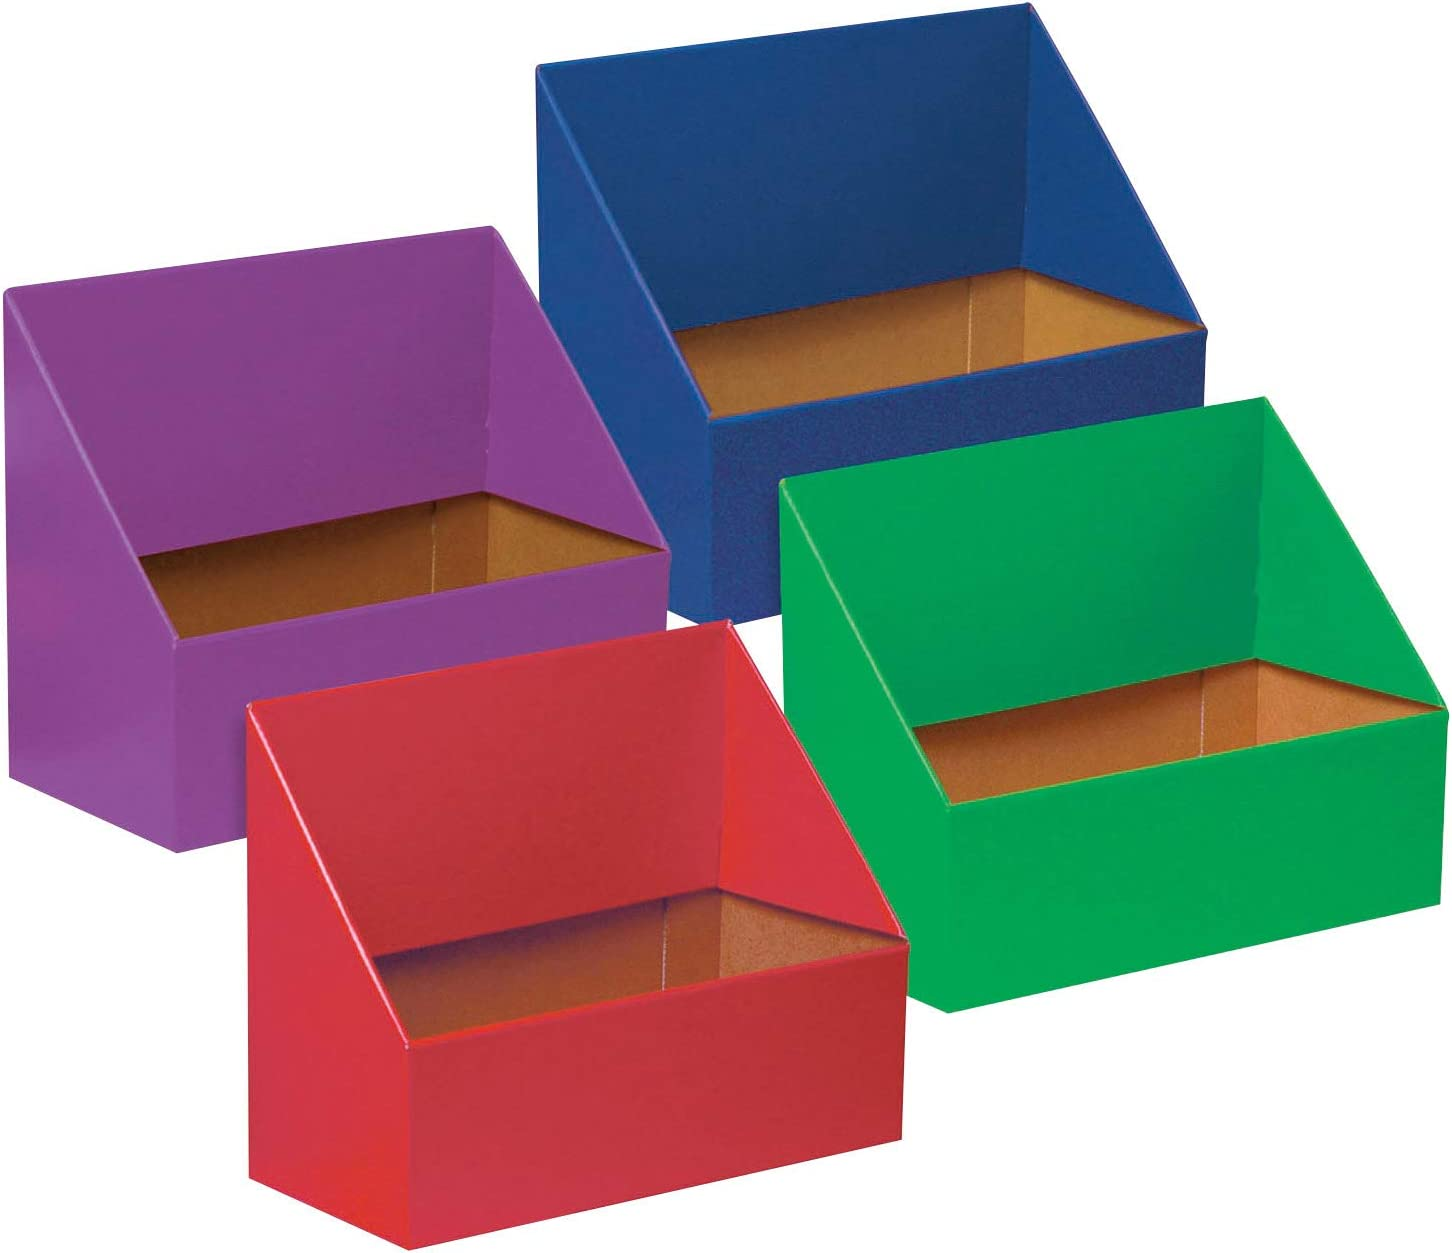 """Classroom Keepers Folder Holder Assortment, Assorted Colors, 9-3/4""""H x 12""""W x 5-3/4""""D, 4 Pieces"""